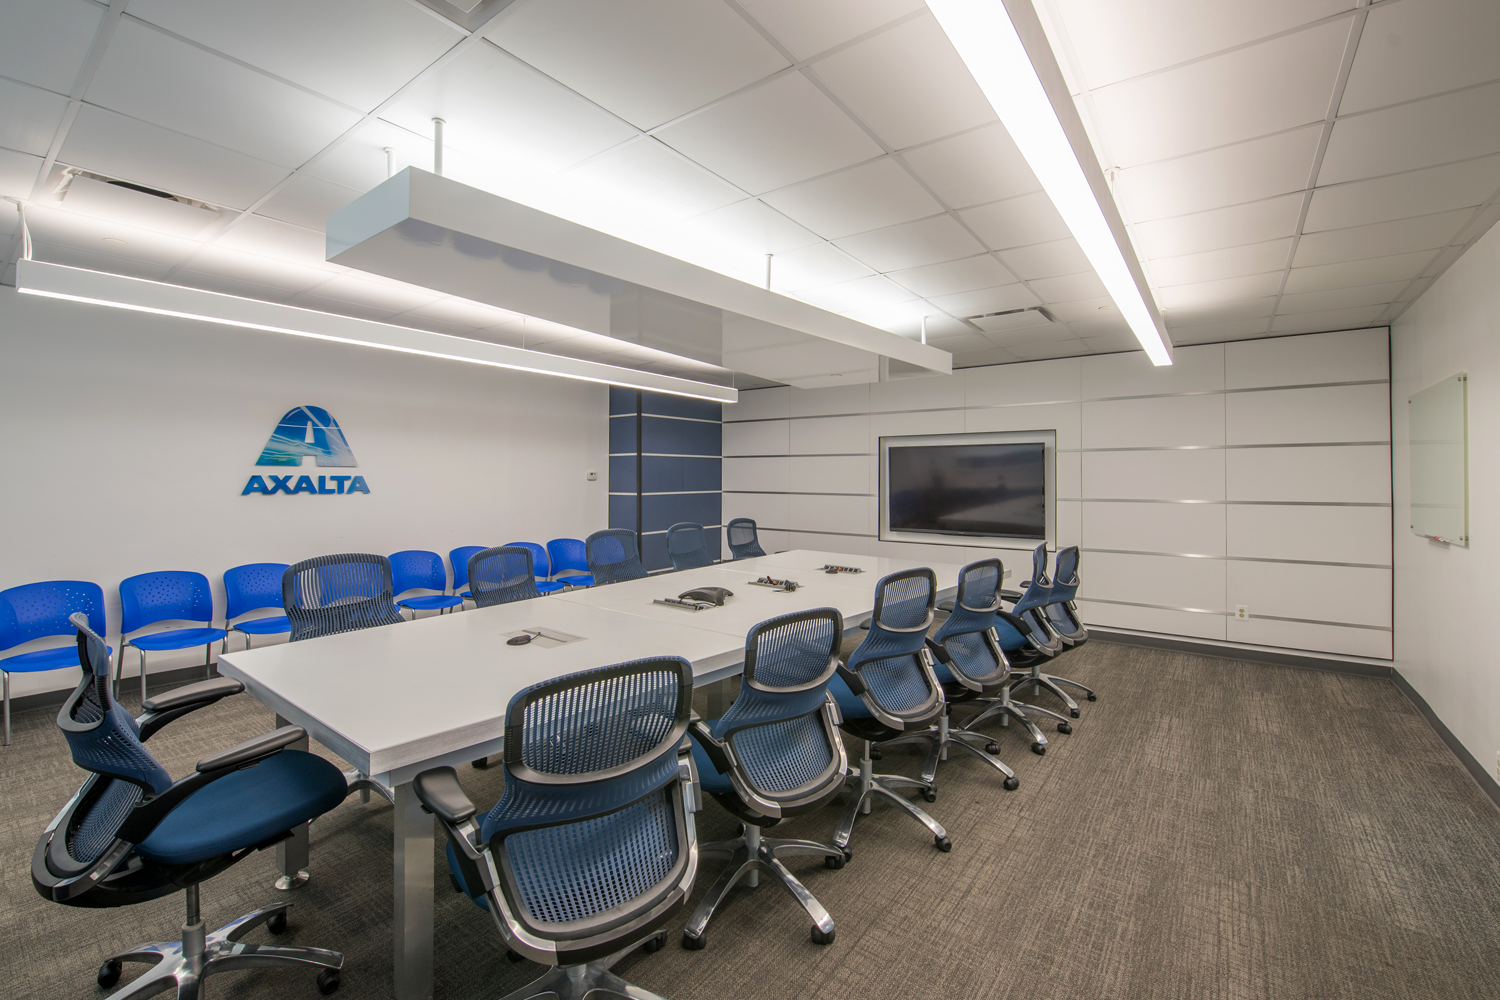 Axalta_ATC_conference_room_modern_interior_design.jpg